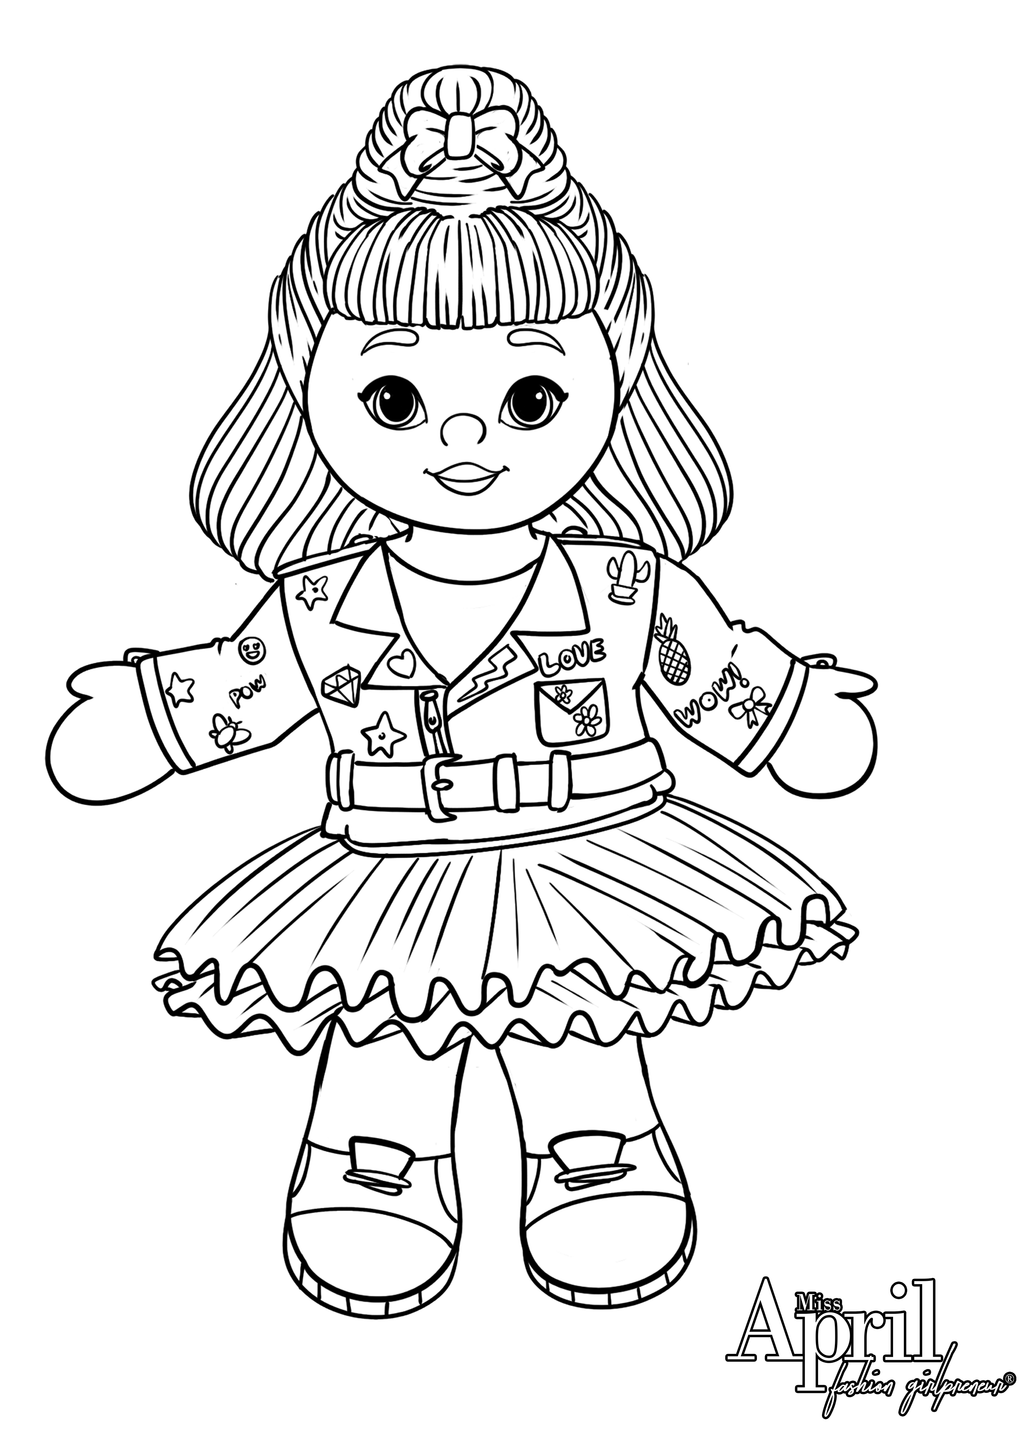 ***FREE DOWNLOAD*** Miss April Coloring Page